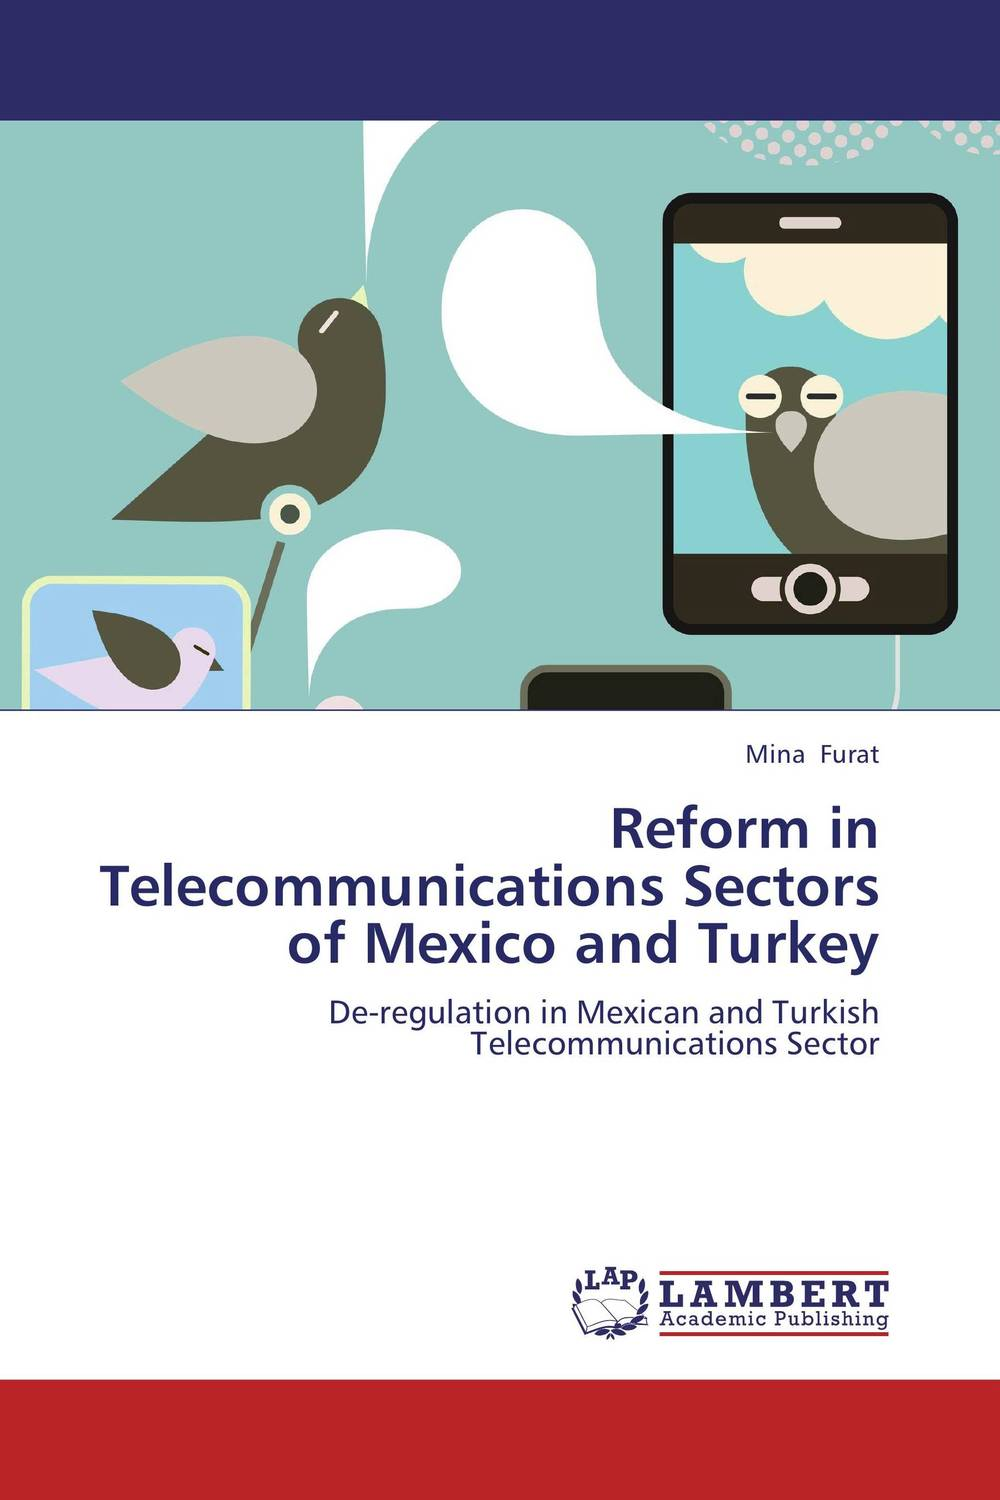 Reform in Telecommunications Sectors of Mexico and Turkey tobias h keller telecommunications law under the light of convergence